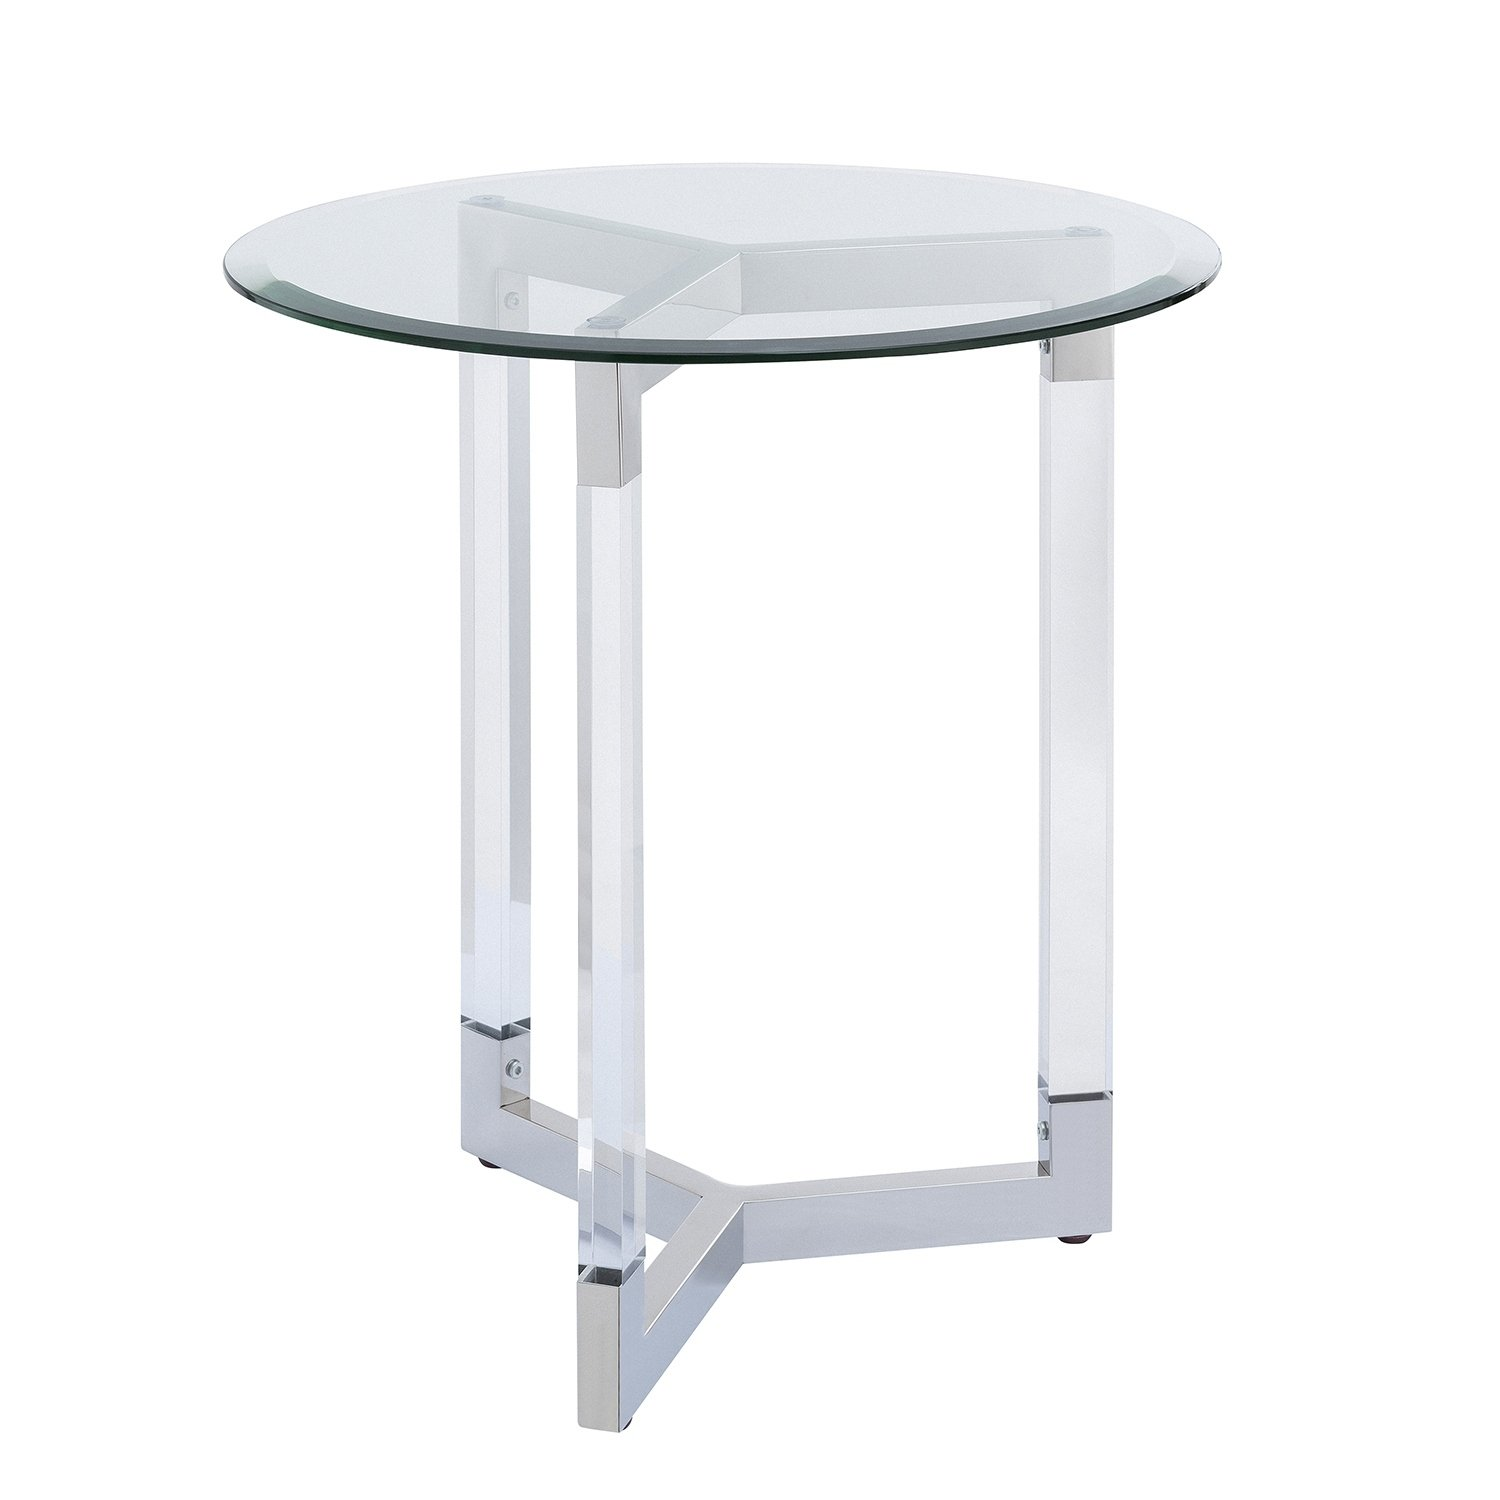 harper blvd dauphine round acrylic accent table with glass top black free shipping today wisteria furniture home wall decor wine cube covers mini sofa end tables pedestal teal